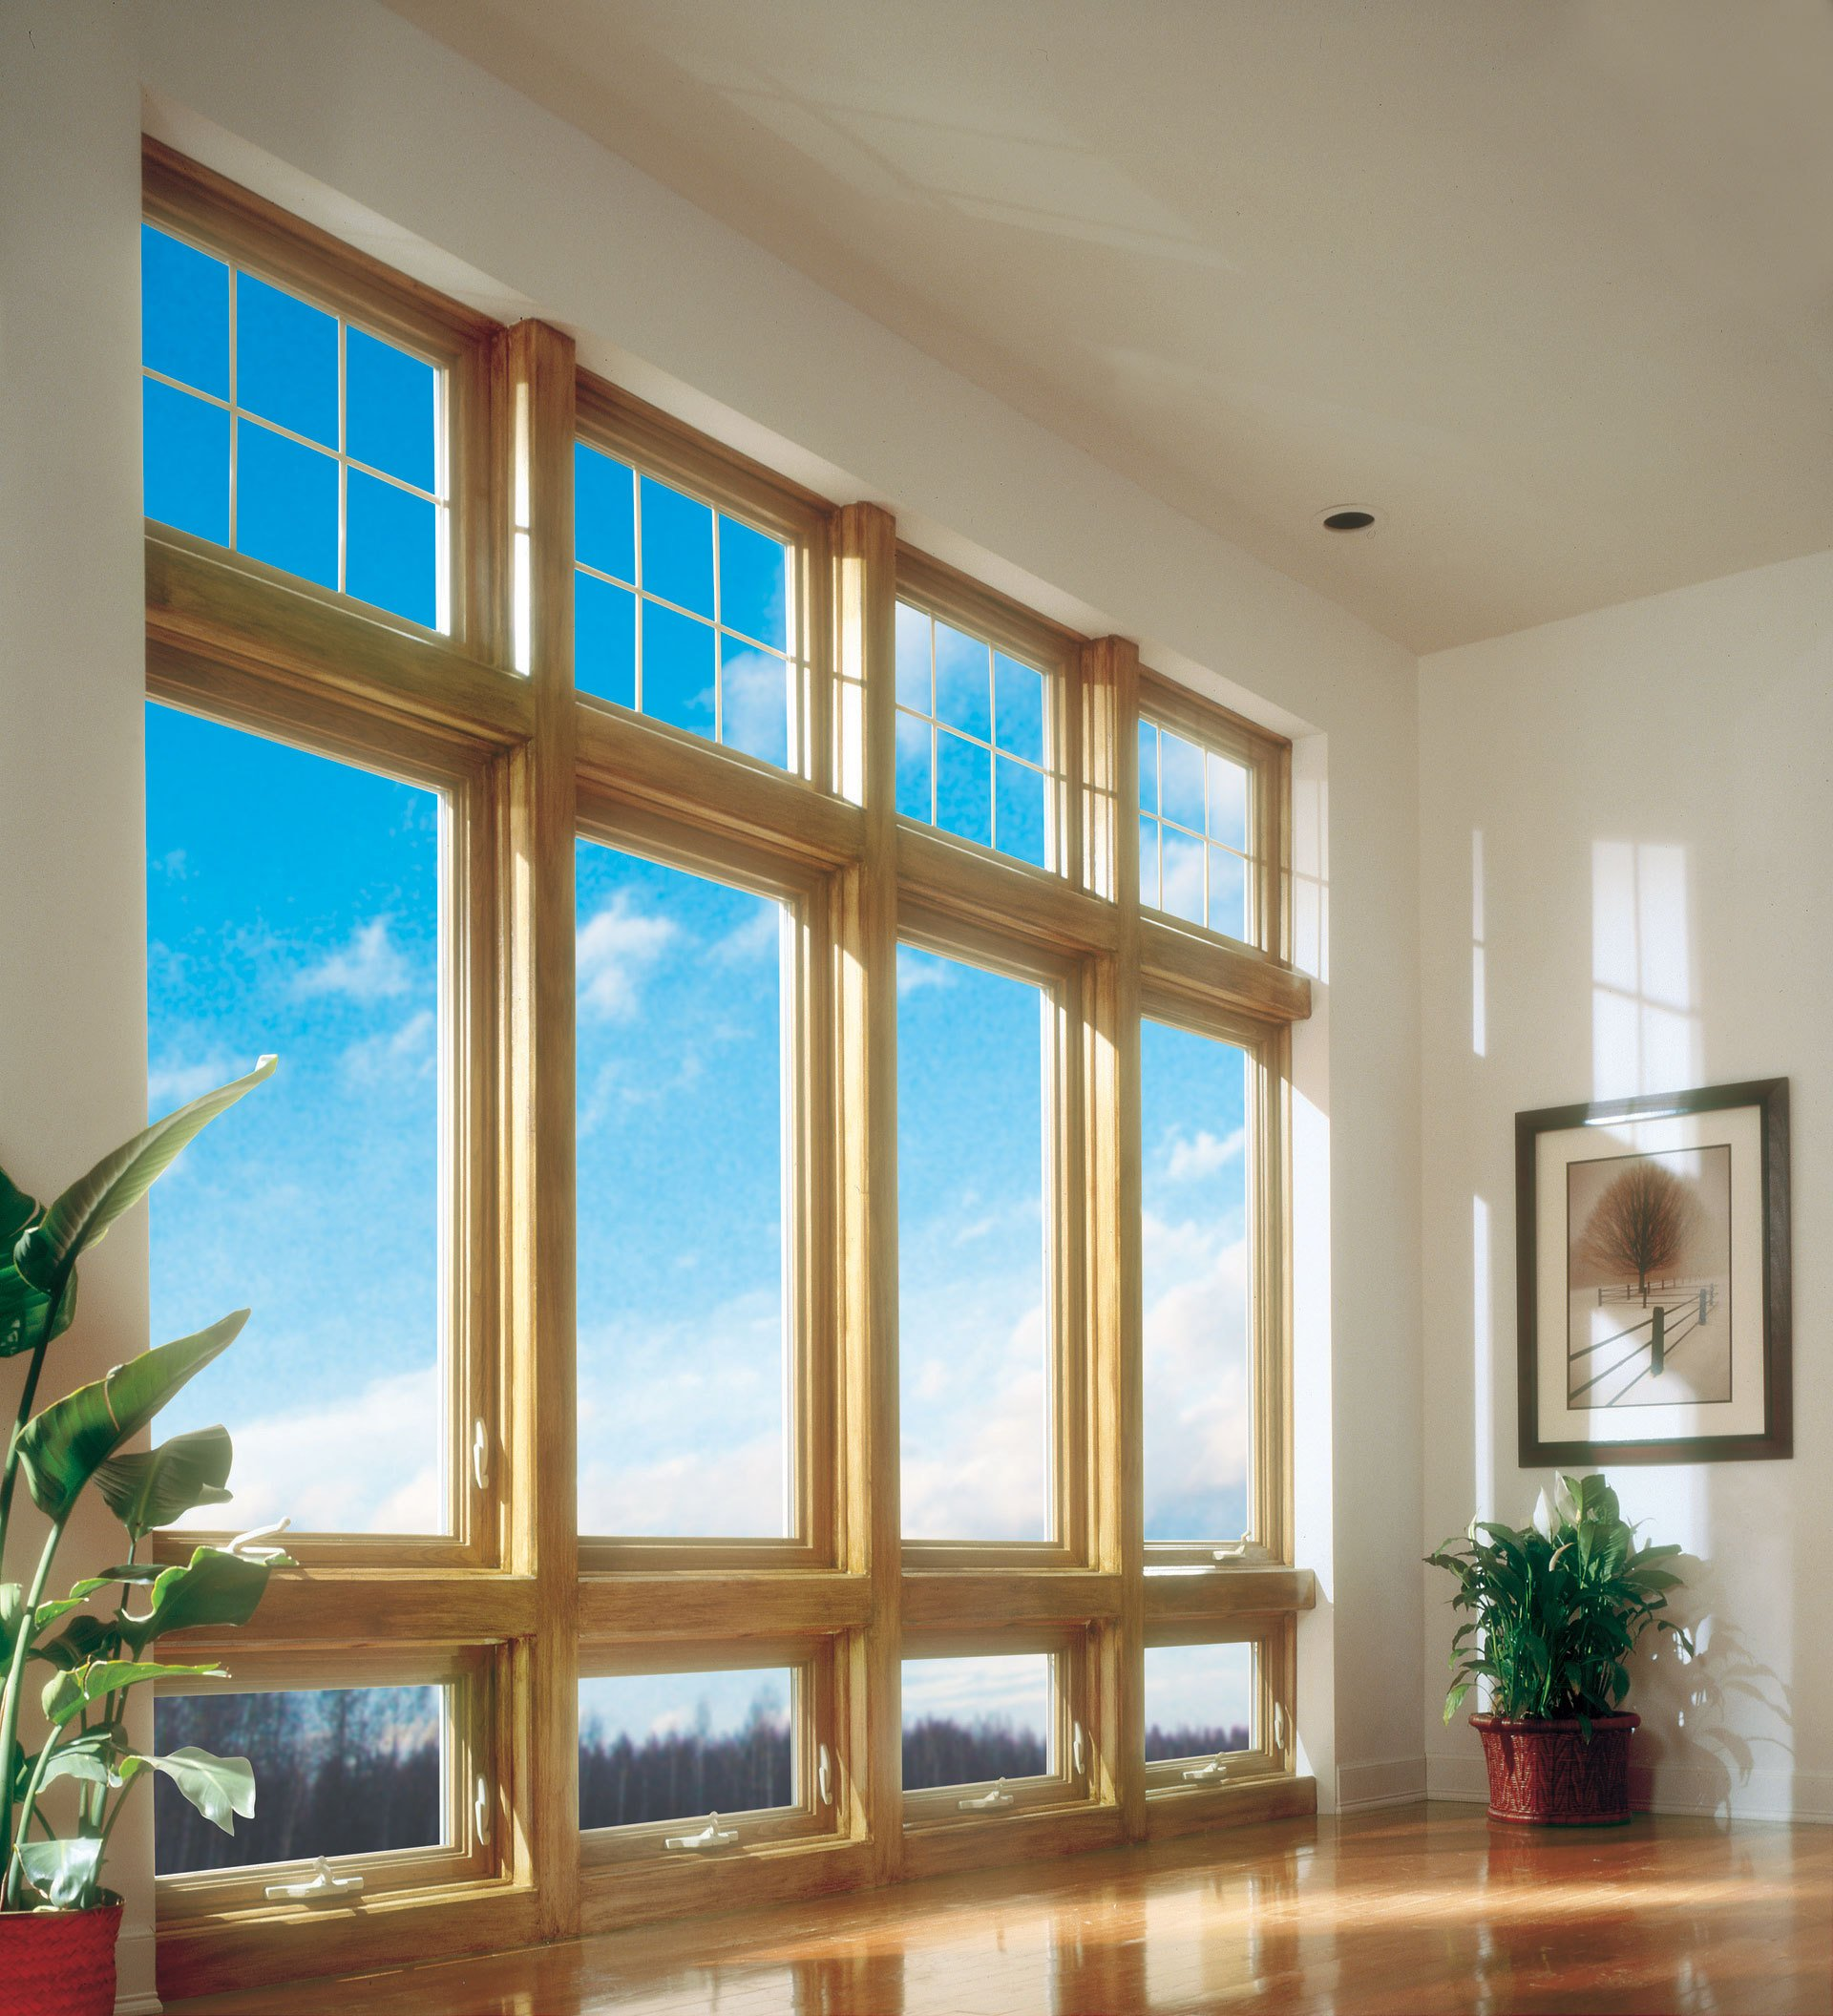 Vinyl replacement windows in cincinnati oh for Energy windows